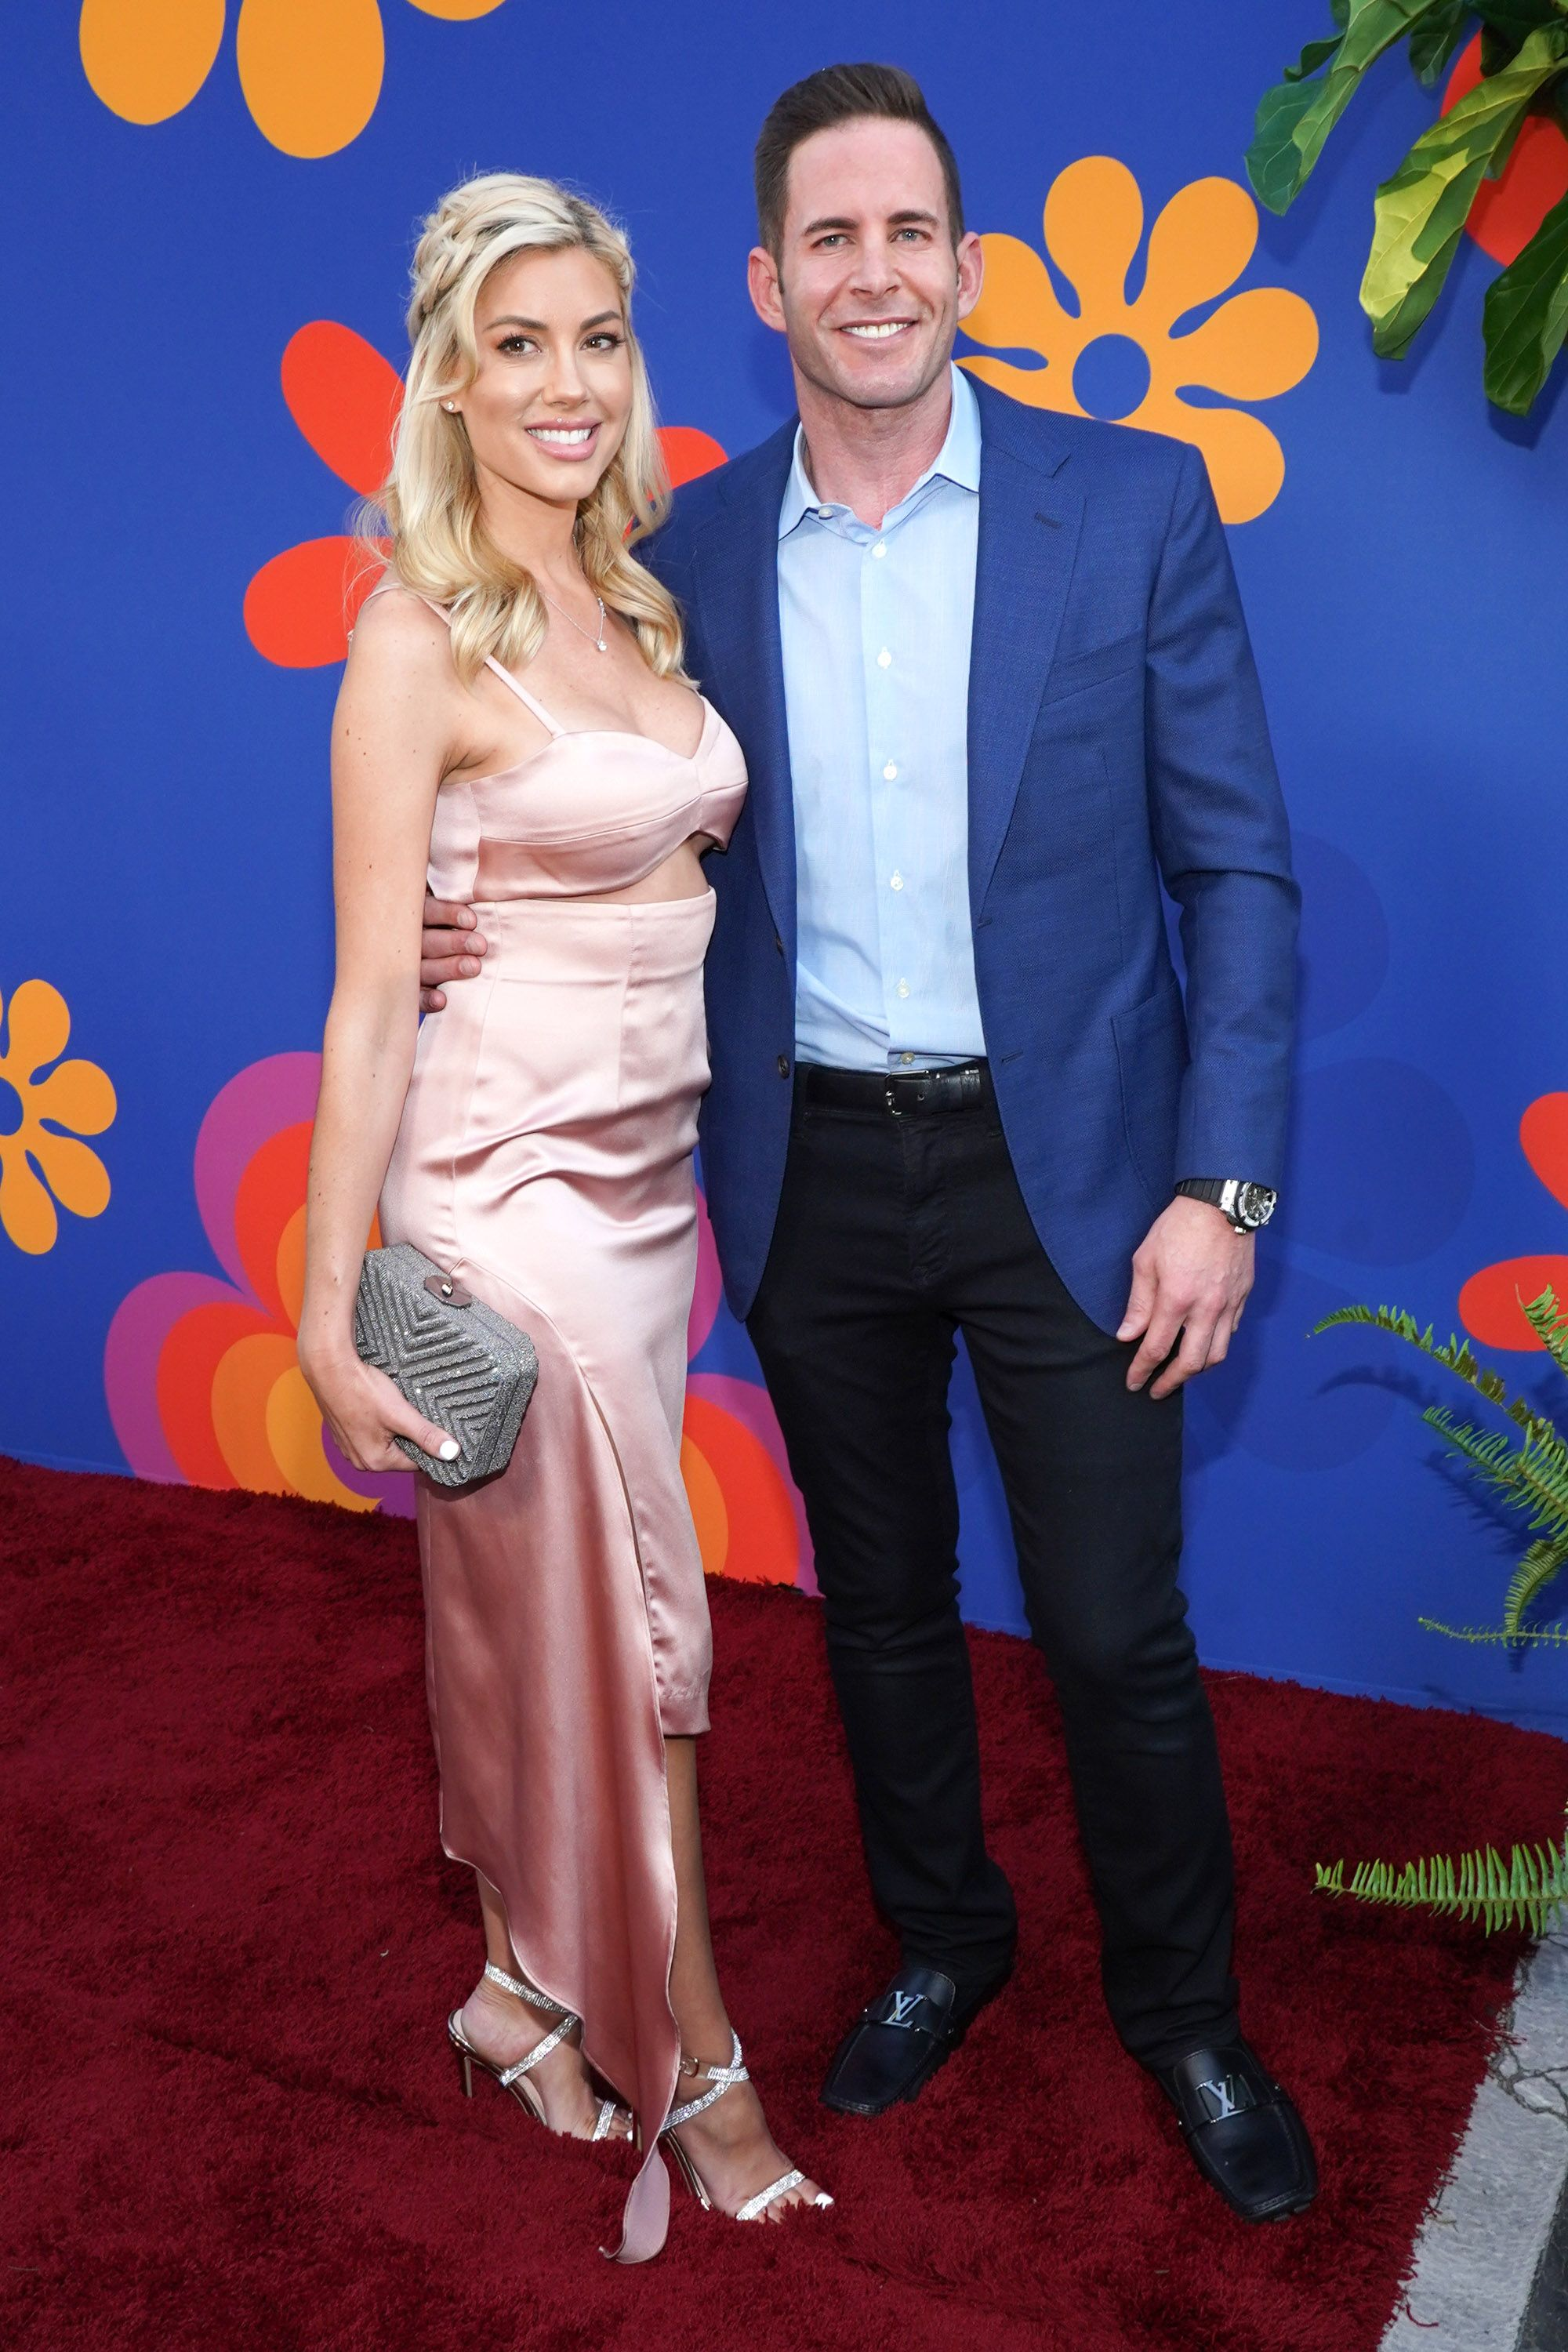 """Tarek El Moussa and Heather Rae Young at the premiere of HGTV's """"A Very Brady Renovation"""" in 2019, in North Hollywood 